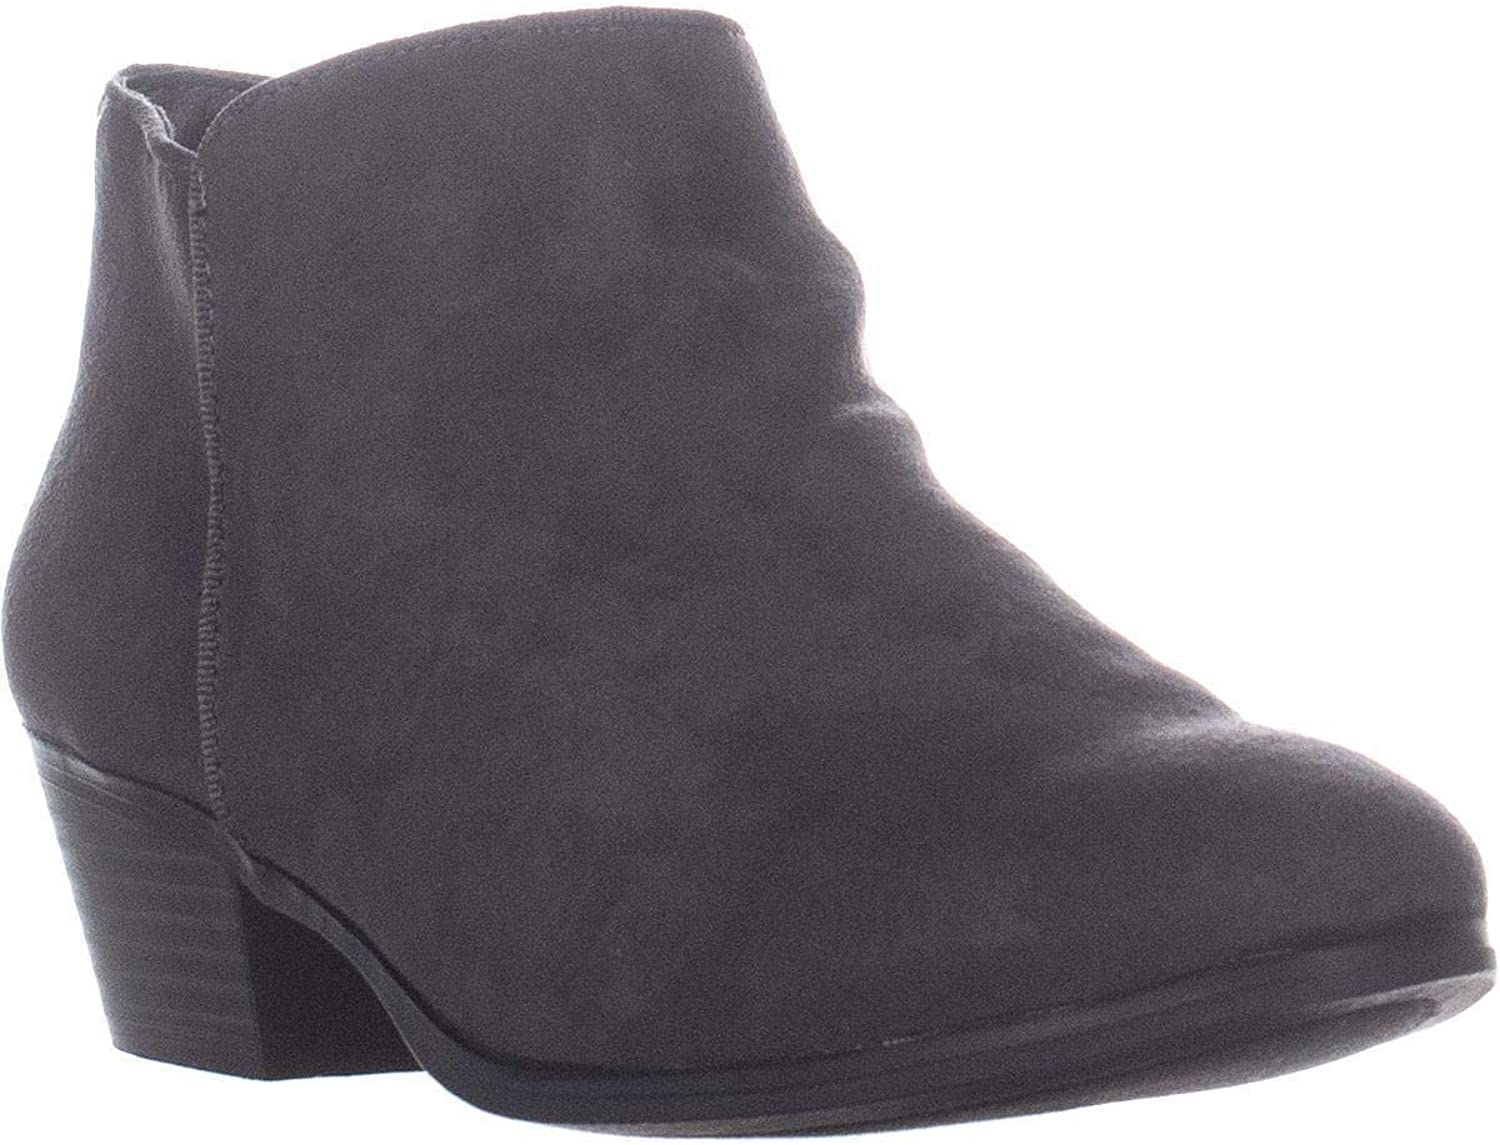 Sc35 Wileyy1 Ankle Boots, Charcoal